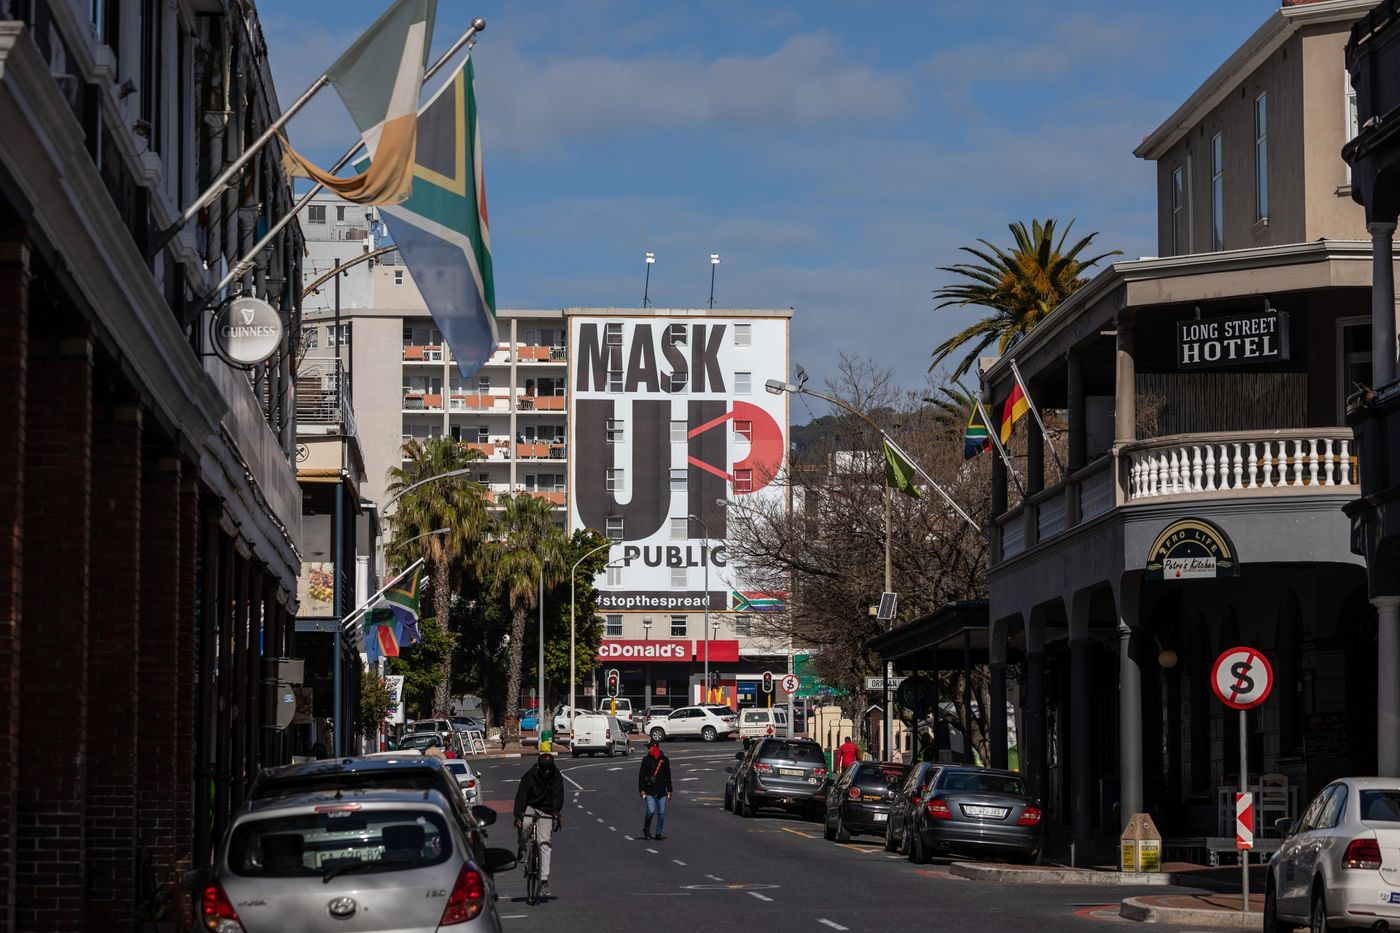 A 'mask up' billboard covers the front of a buildingin Cape Town on Aug. 19.